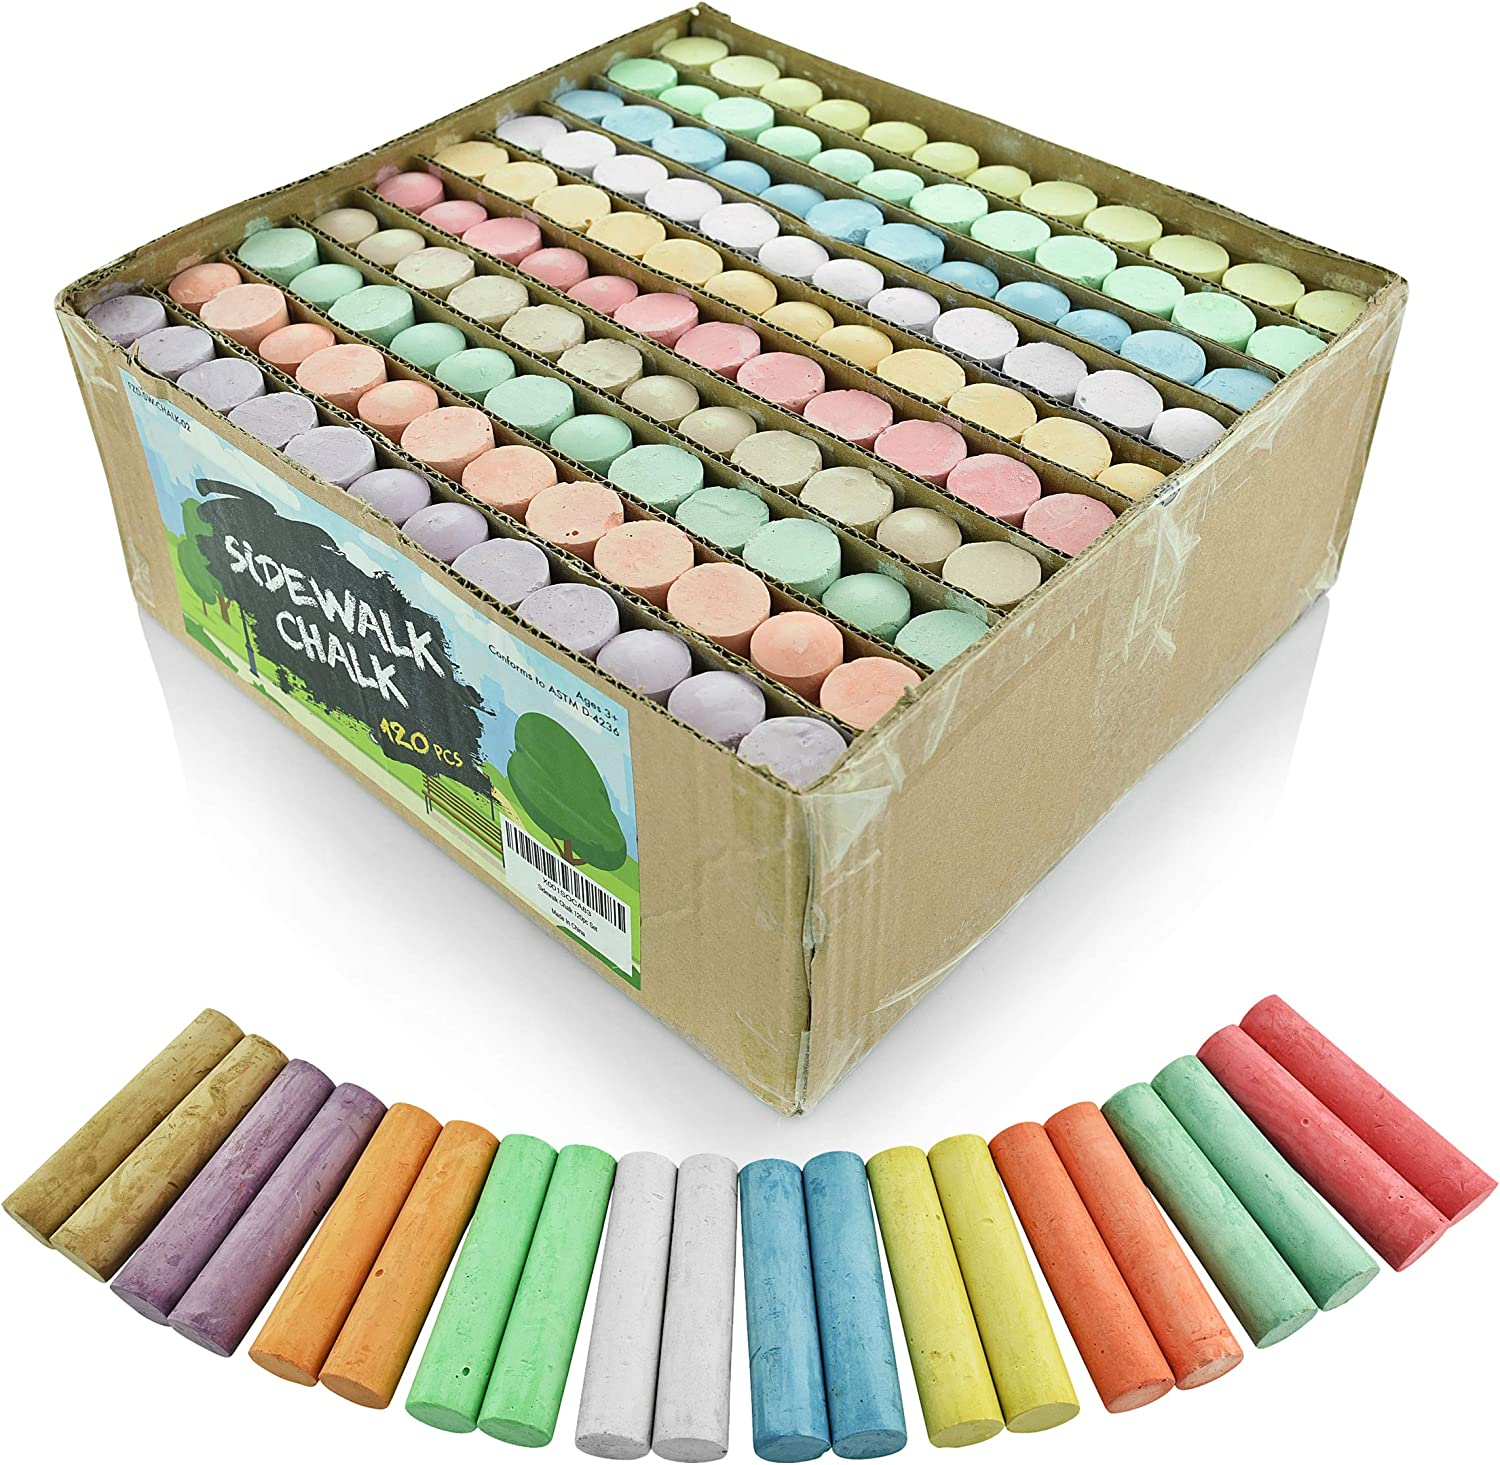 Sidewalk Chalk Set – Pack of 120 Multi-Color Jumbo Street Chalks – 10 Bright & Cheerful Colors – Nontoxic, Washable Tapered Chalks for Teachers and Schools - 1 x 4 Inches